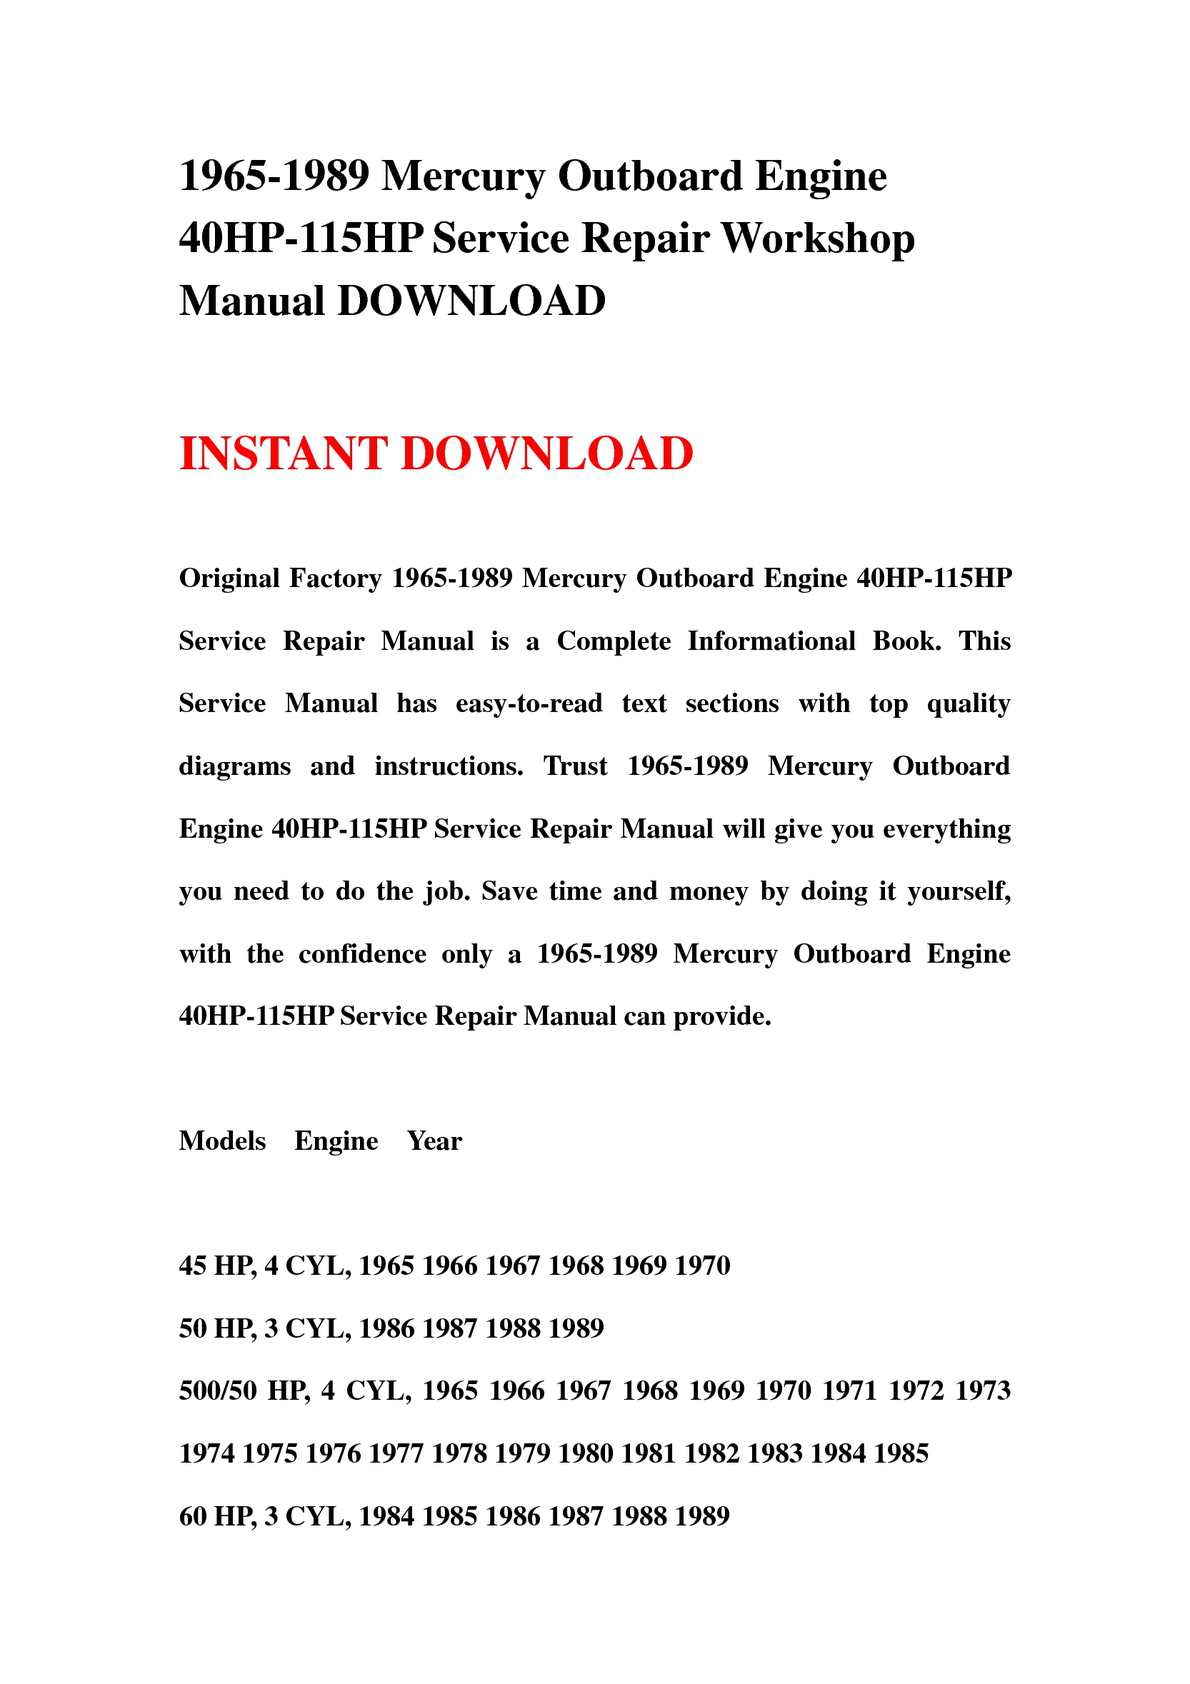 Calaméo - 1965-1989 Mercury Outboard Engine 40HP-115HP Service Repair  Workshop Manual DOWNLOAD